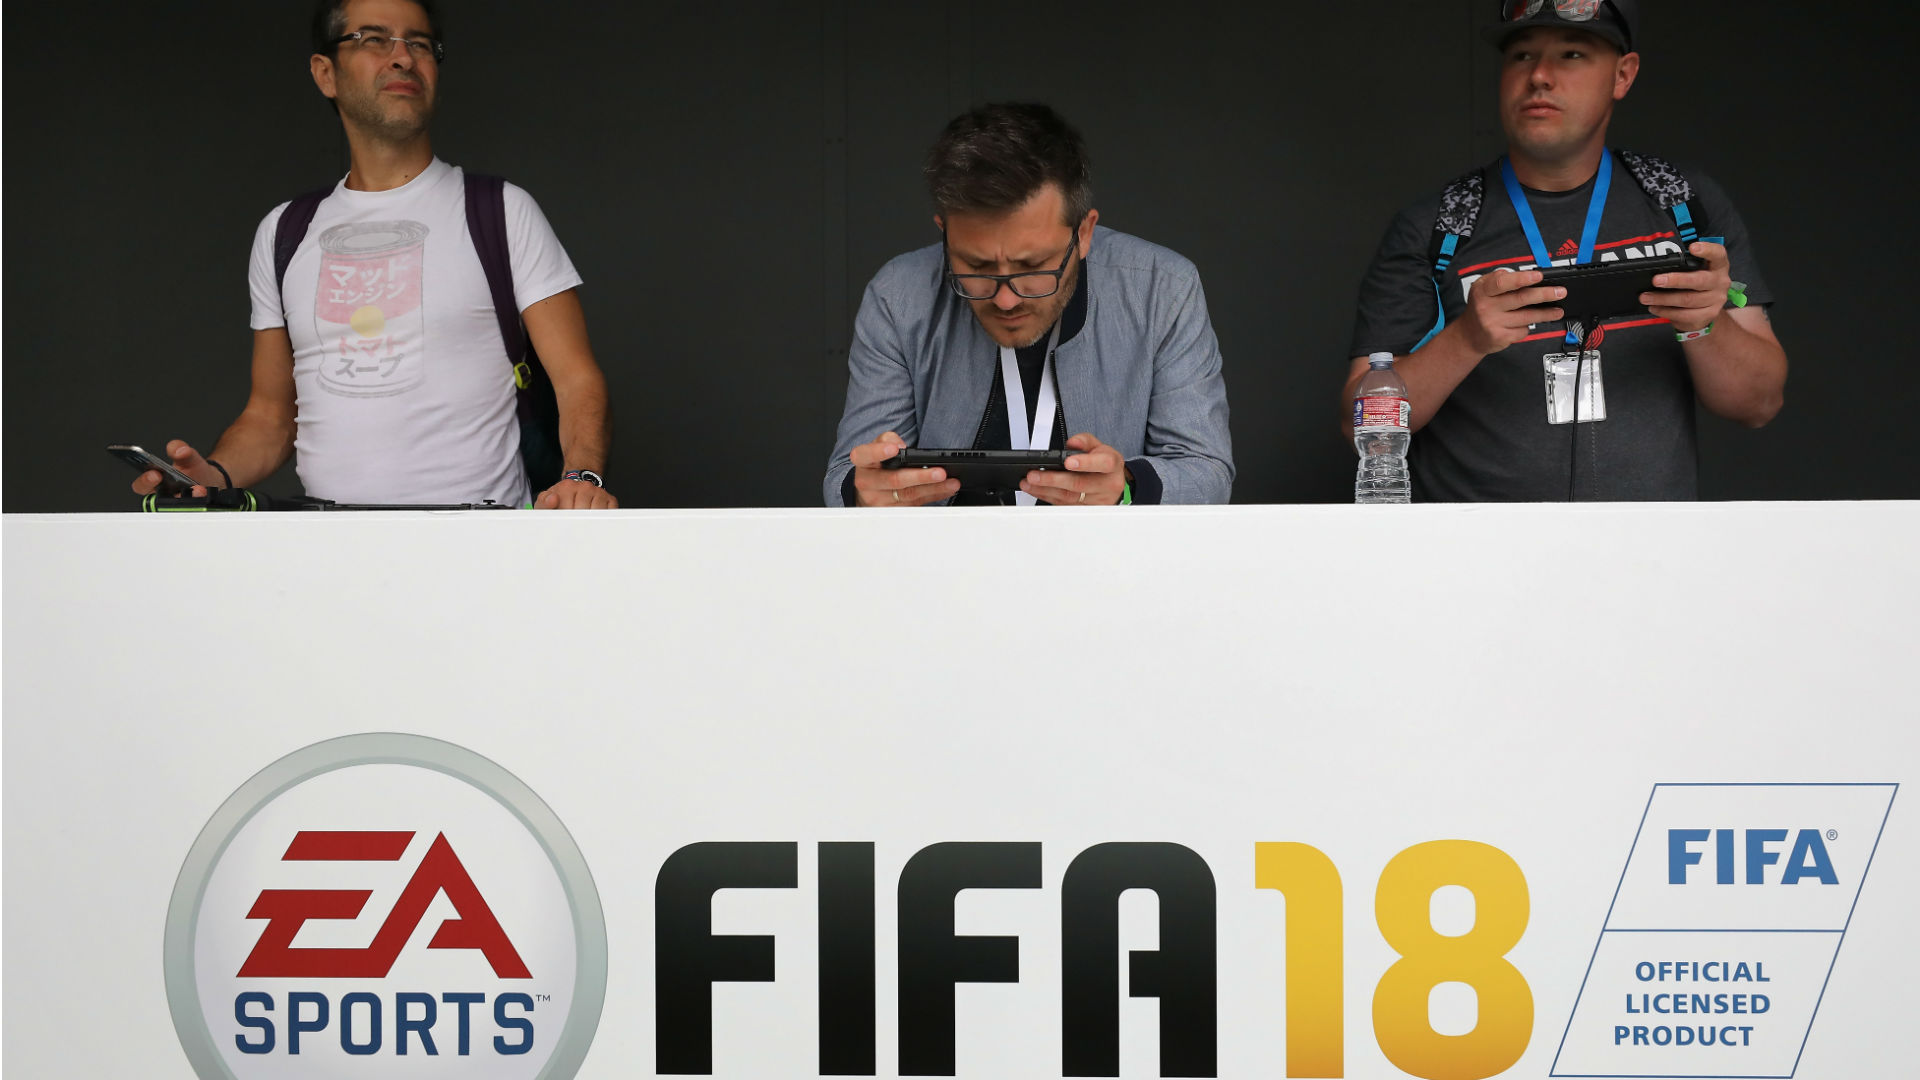 FIFA 18, già disponibile su EA Access per Xbox One